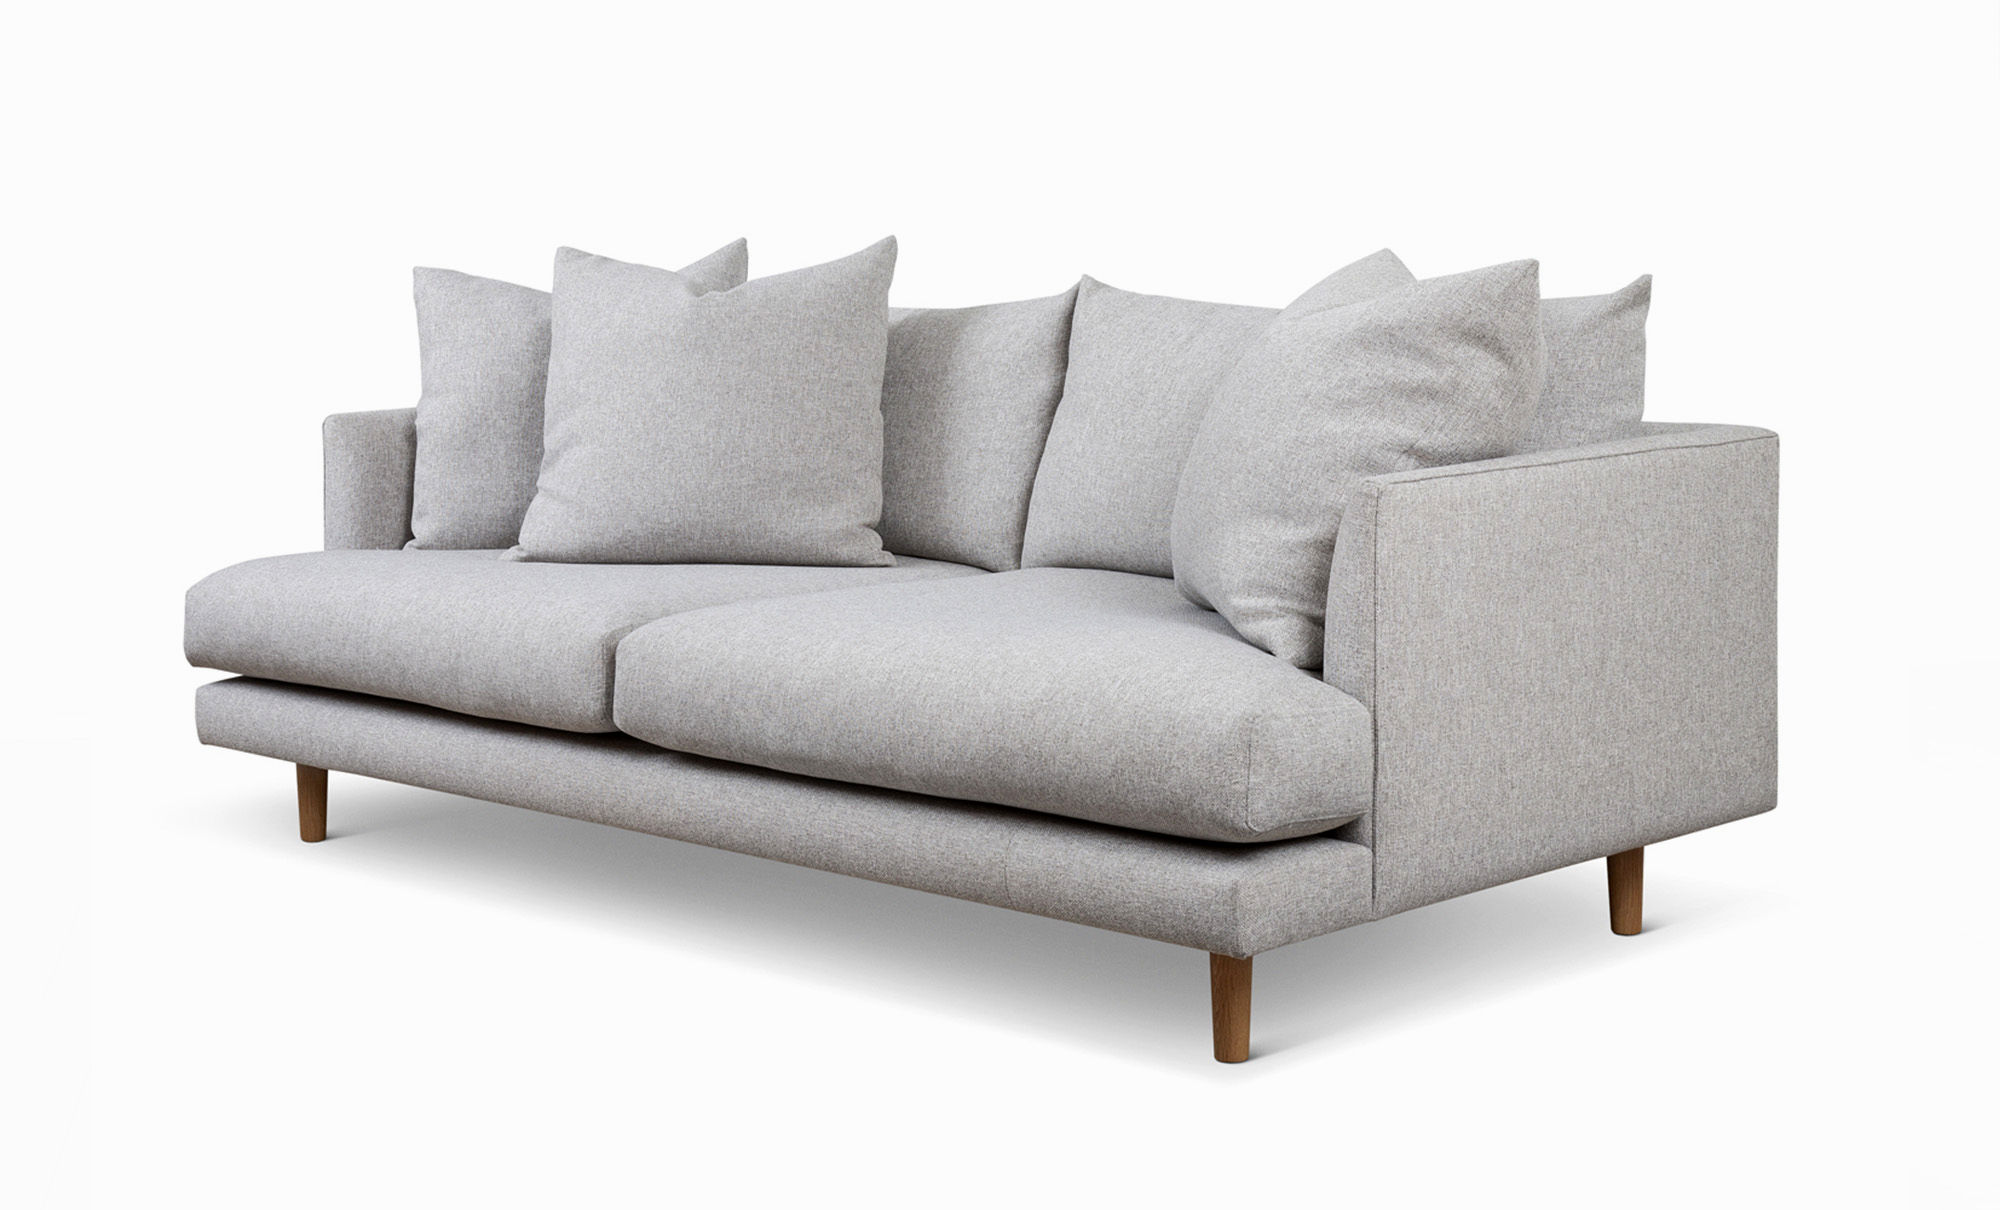 best gray leather sofa pattern-Beautiful Gray Leather sofa Décor